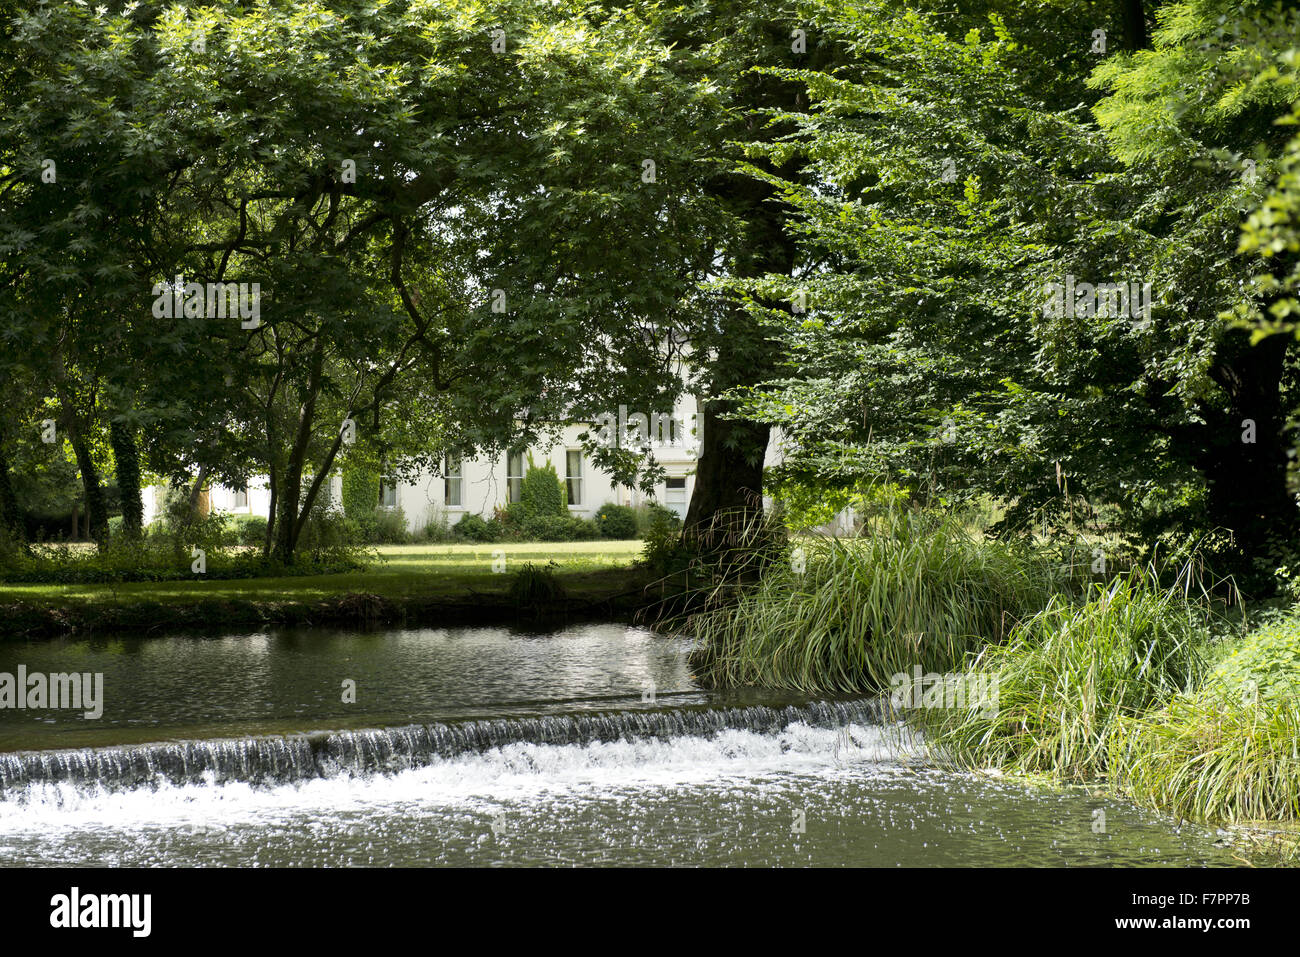 View of the River Wandle and weir, Morden Hall Park, London. Stock Photo